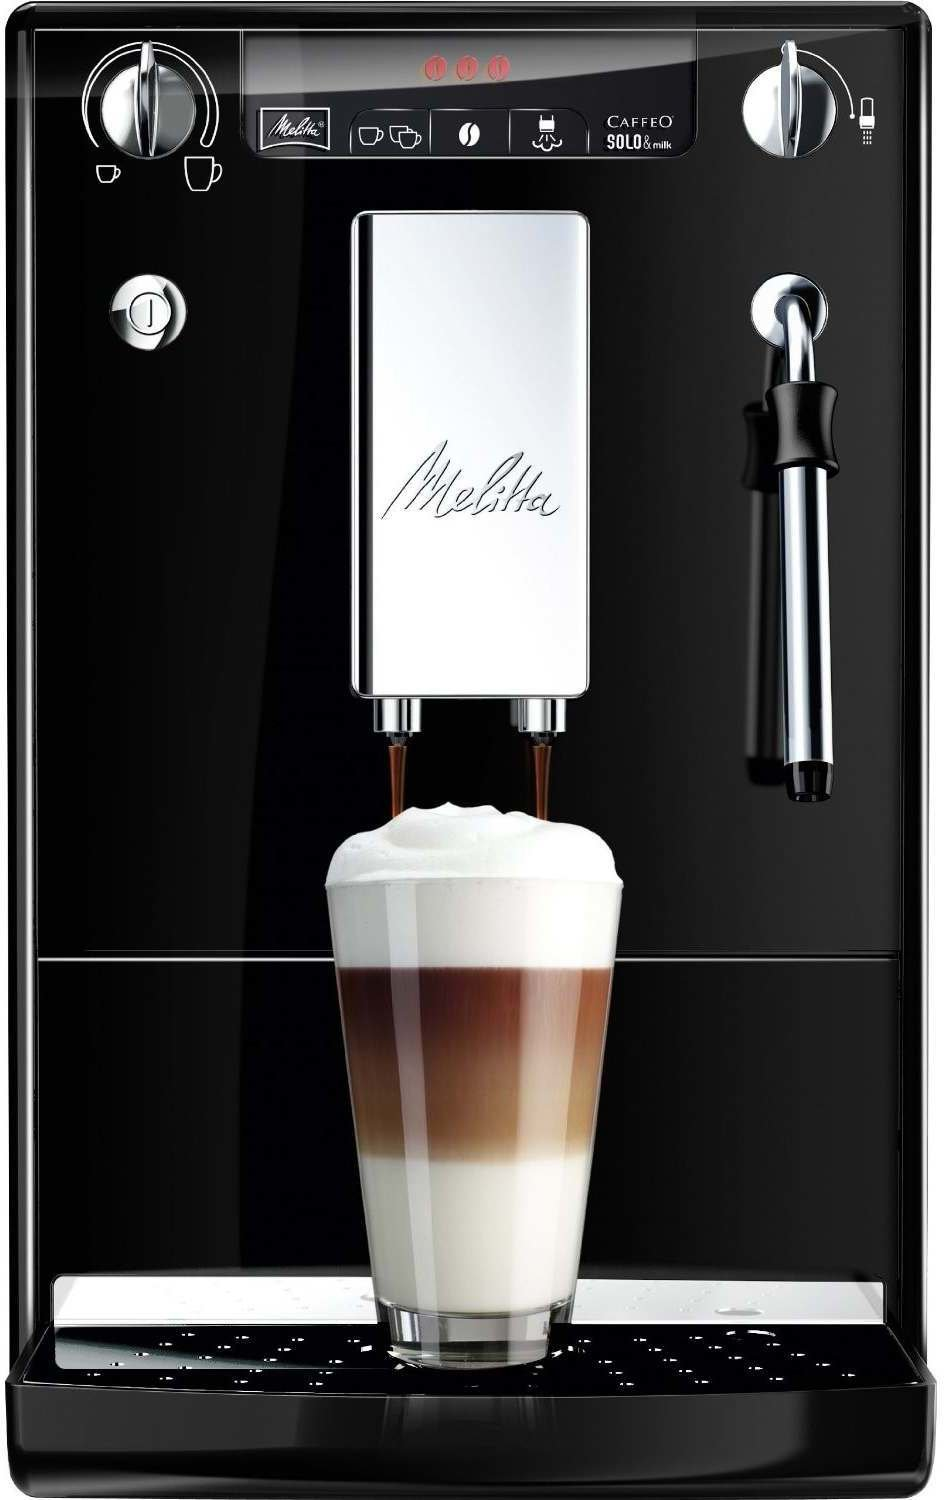 melitta e 953 101 caffeo solo milk kaffeevollautomat im test auf. Black Bedroom Furniture Sets. Home Design Ideas